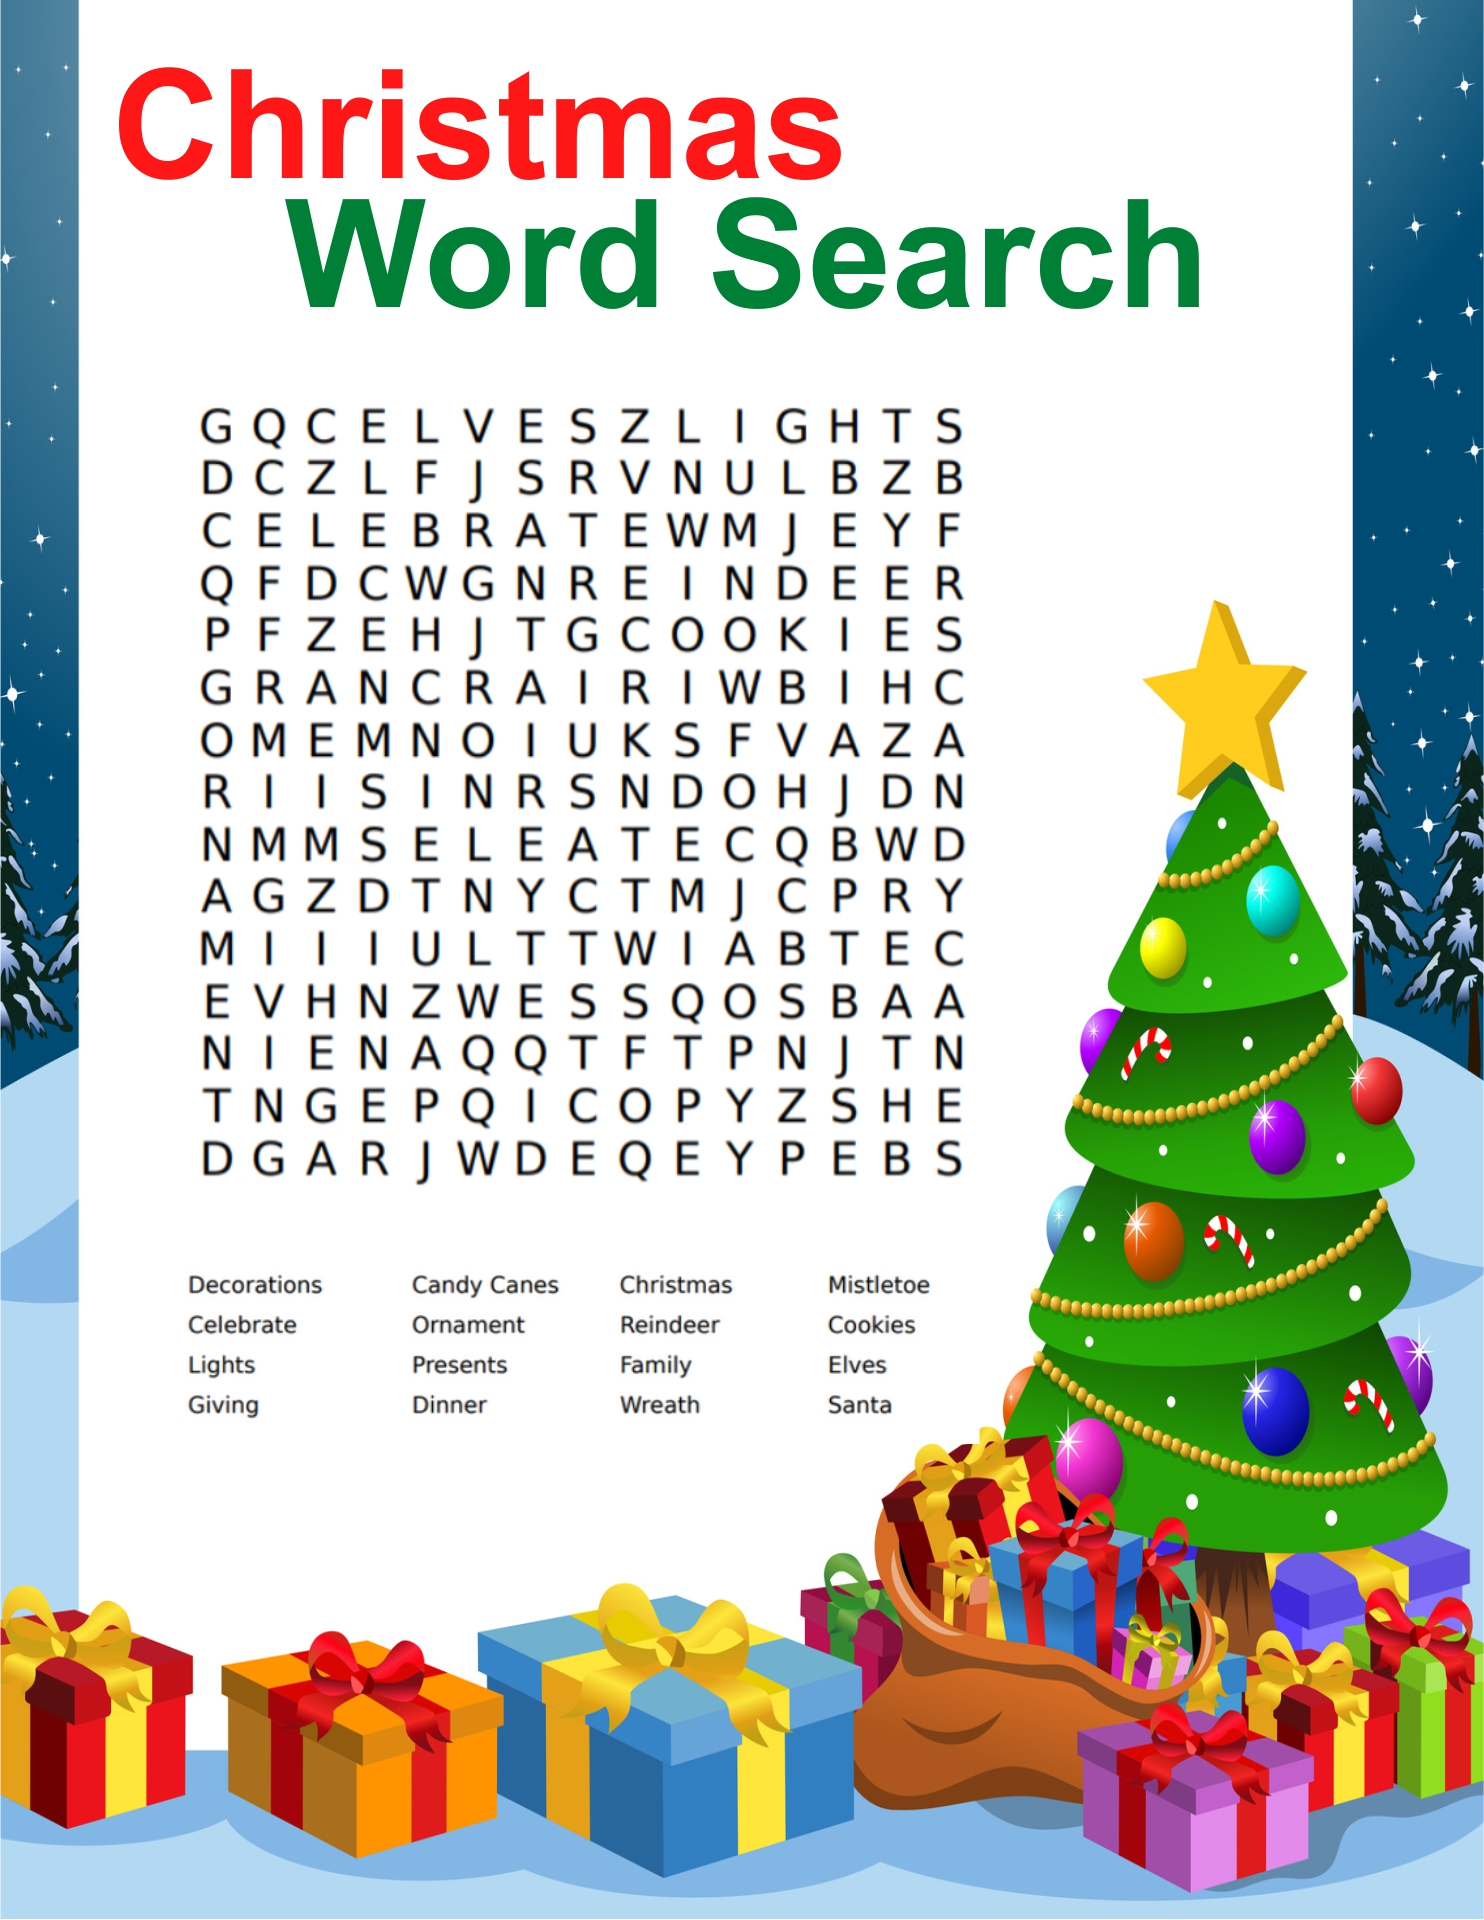 Christmas Word Search Puzzles for Adults